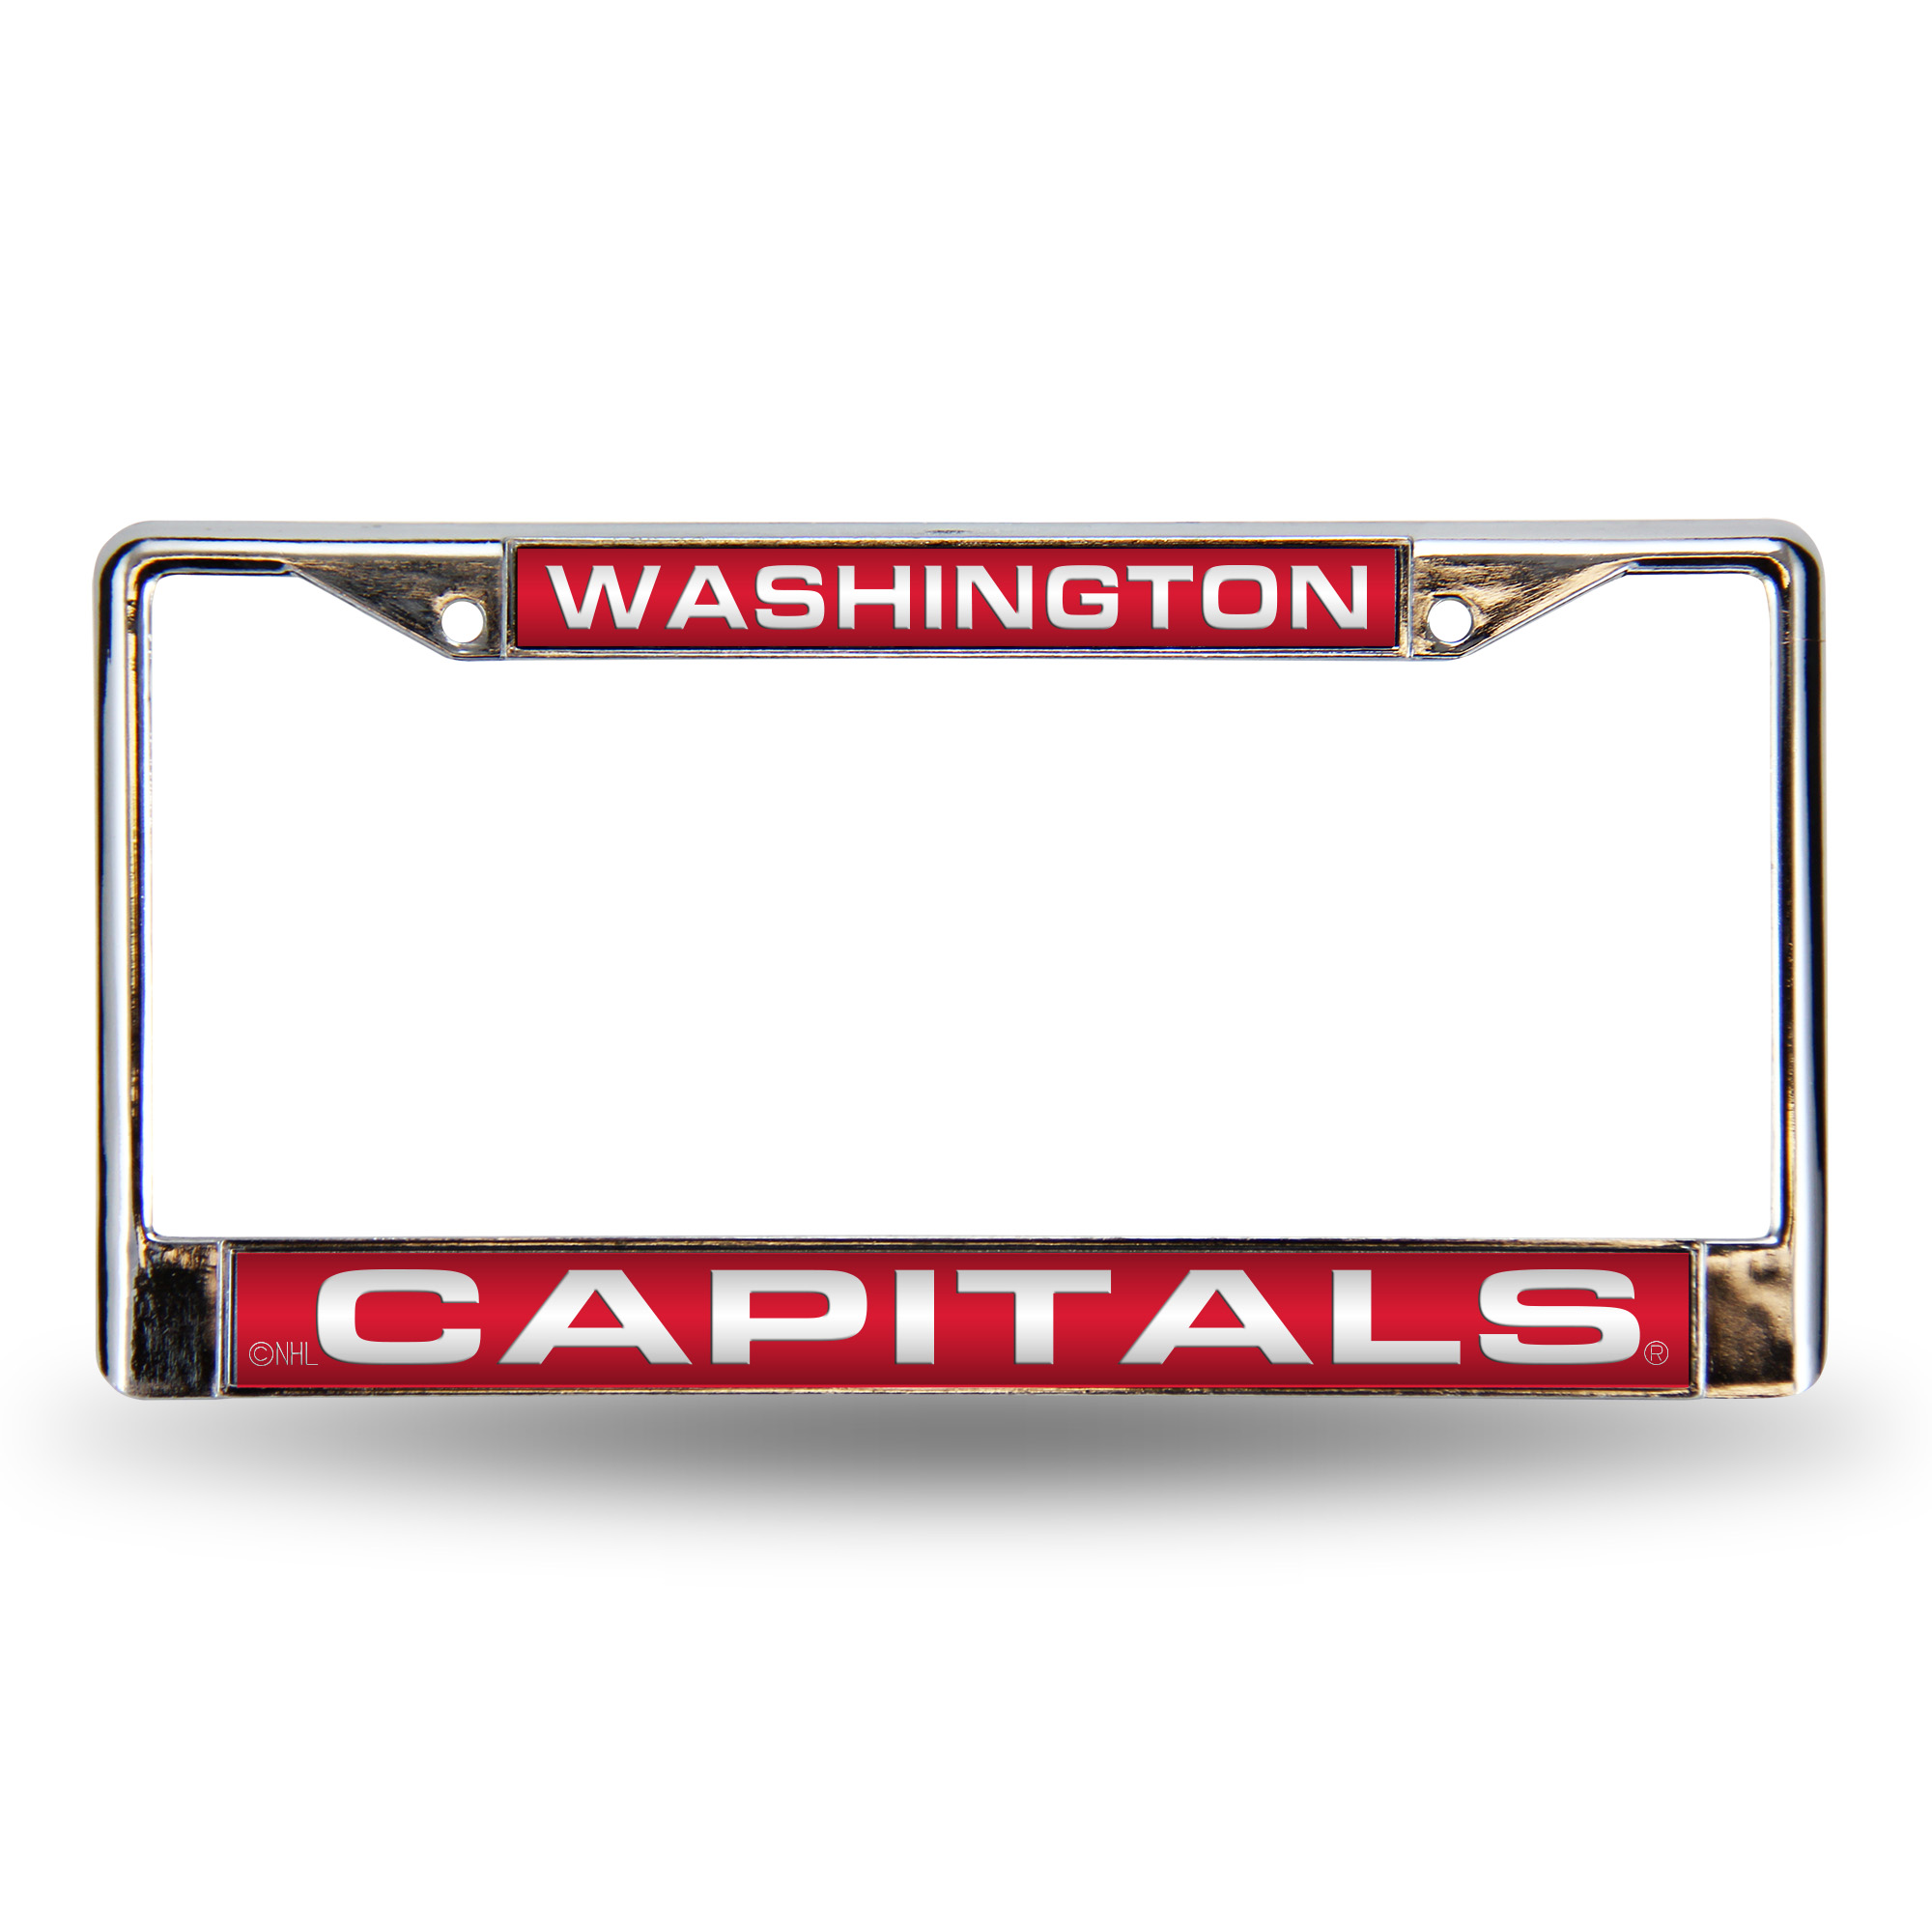 Washington Capitals Official NHL 12 inch x 6 inch  Metal License Plate Frame by Rico Industries